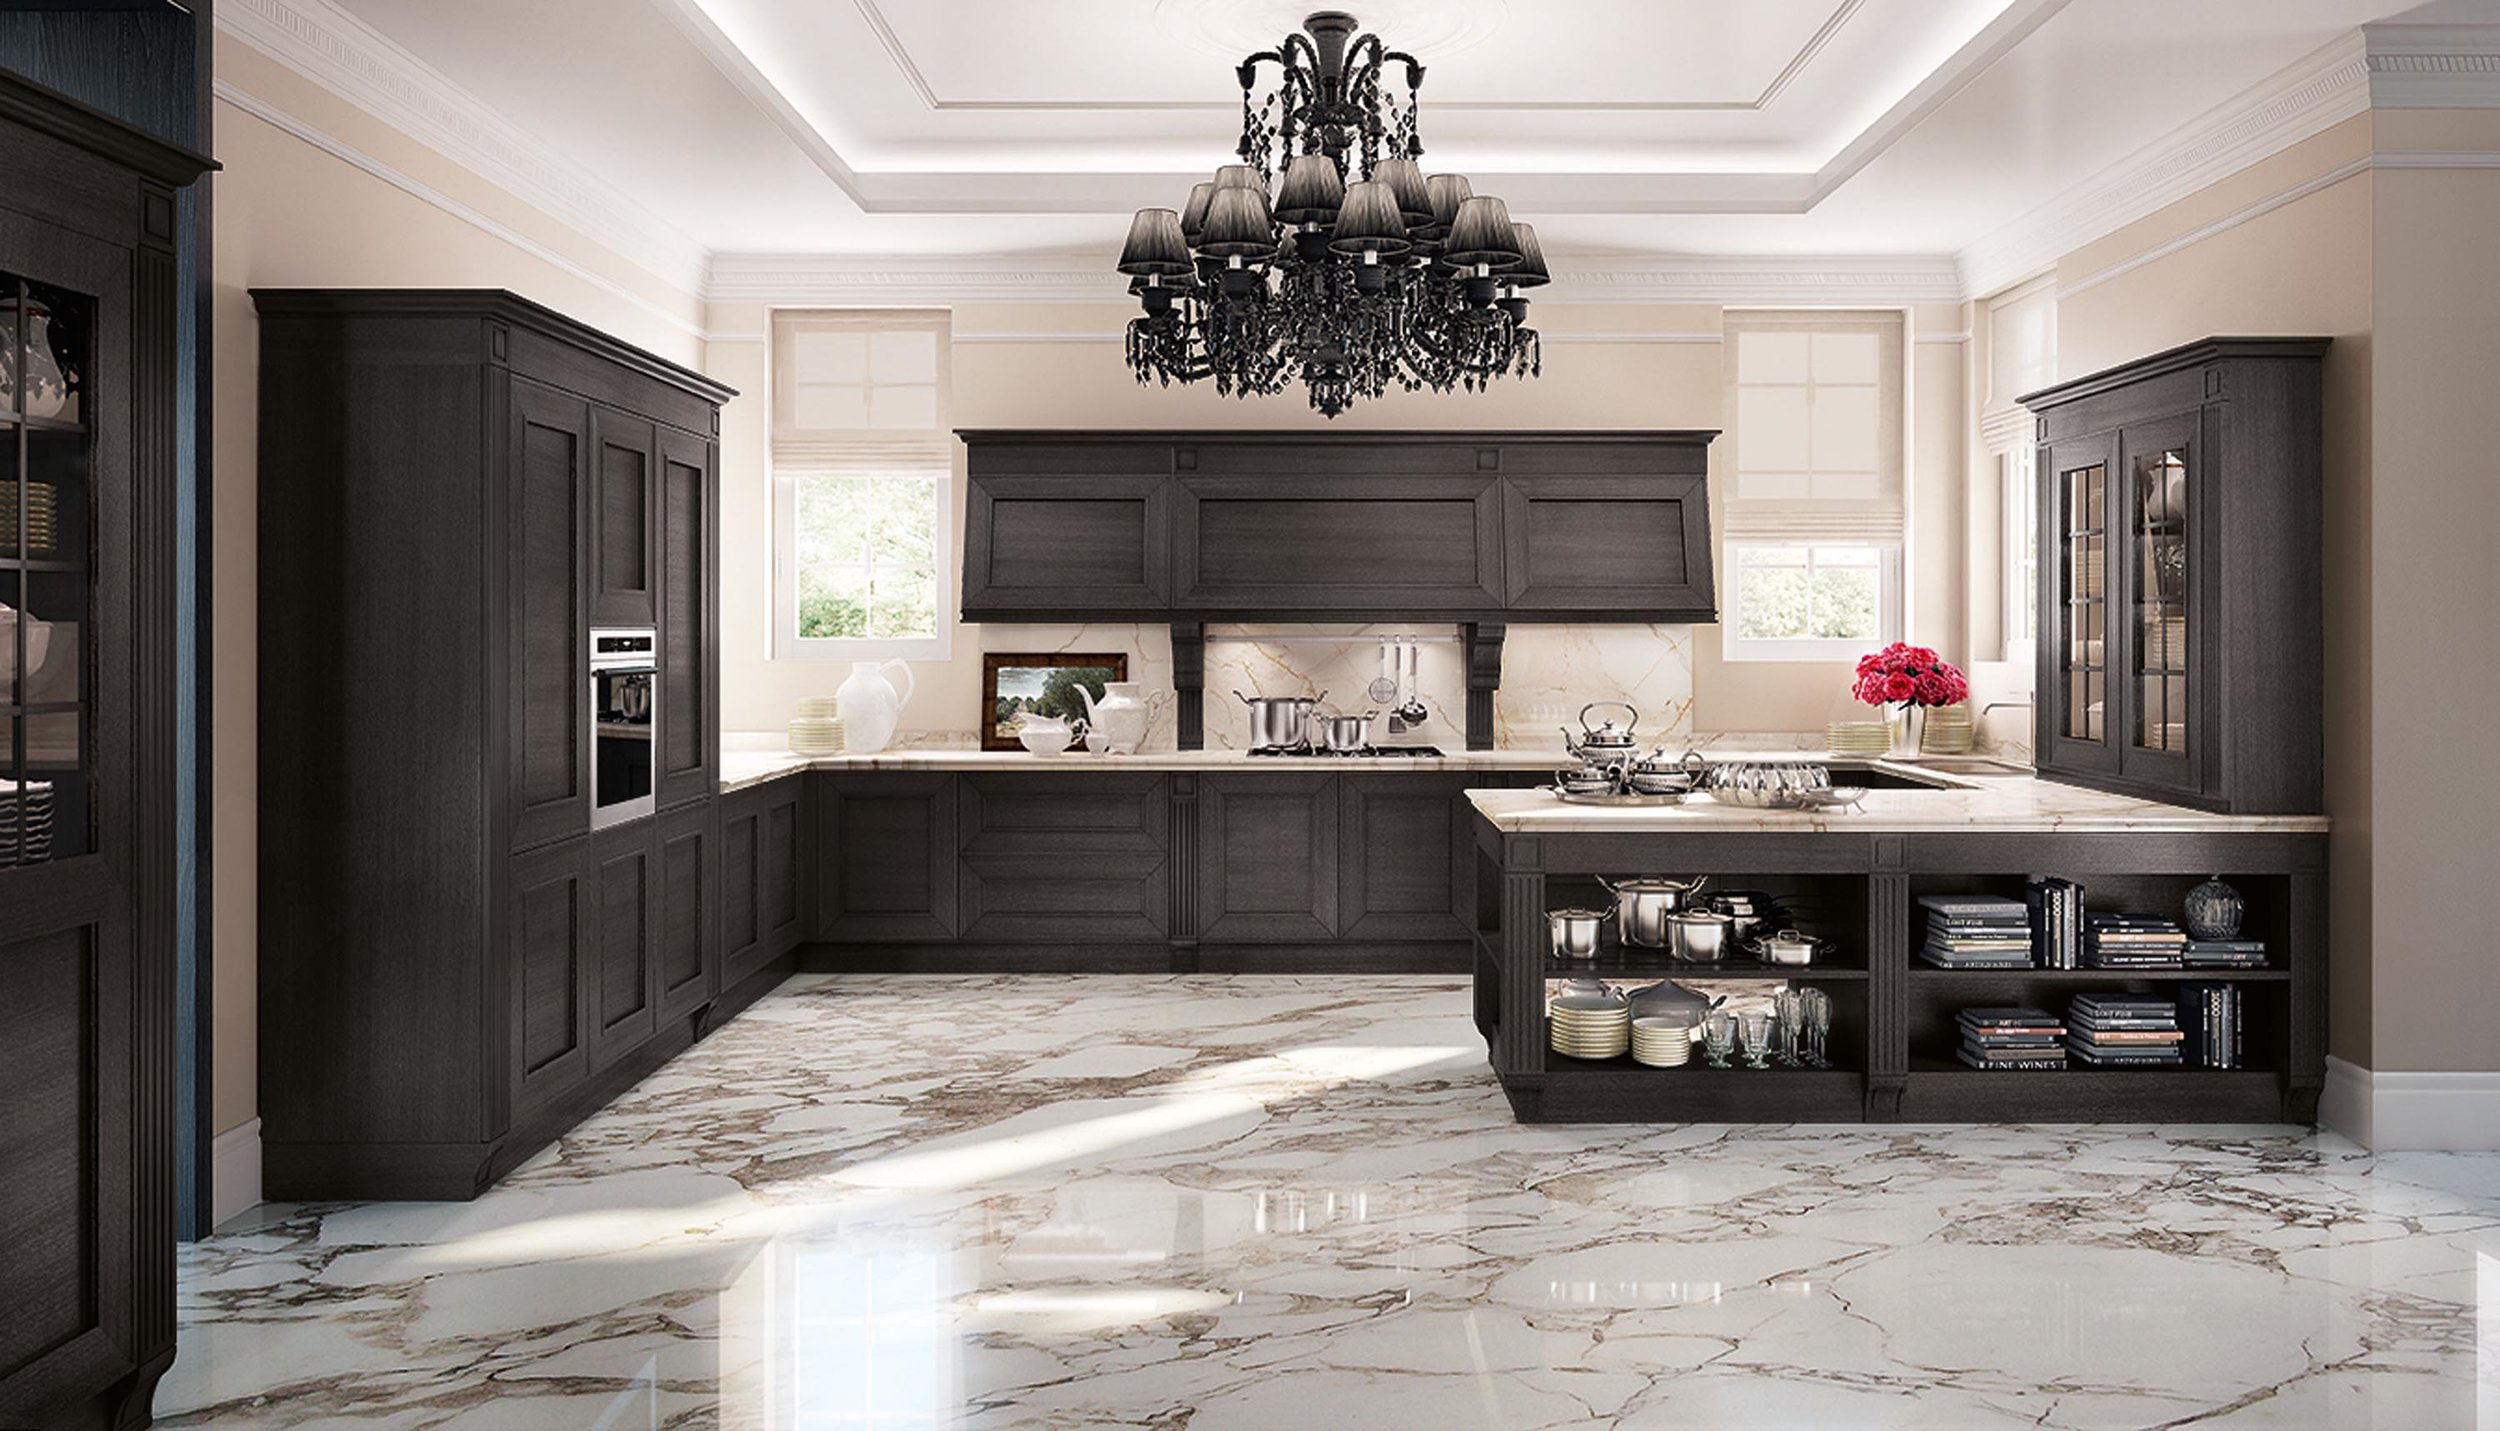 Contemporary style kitchen with spacious marble floor